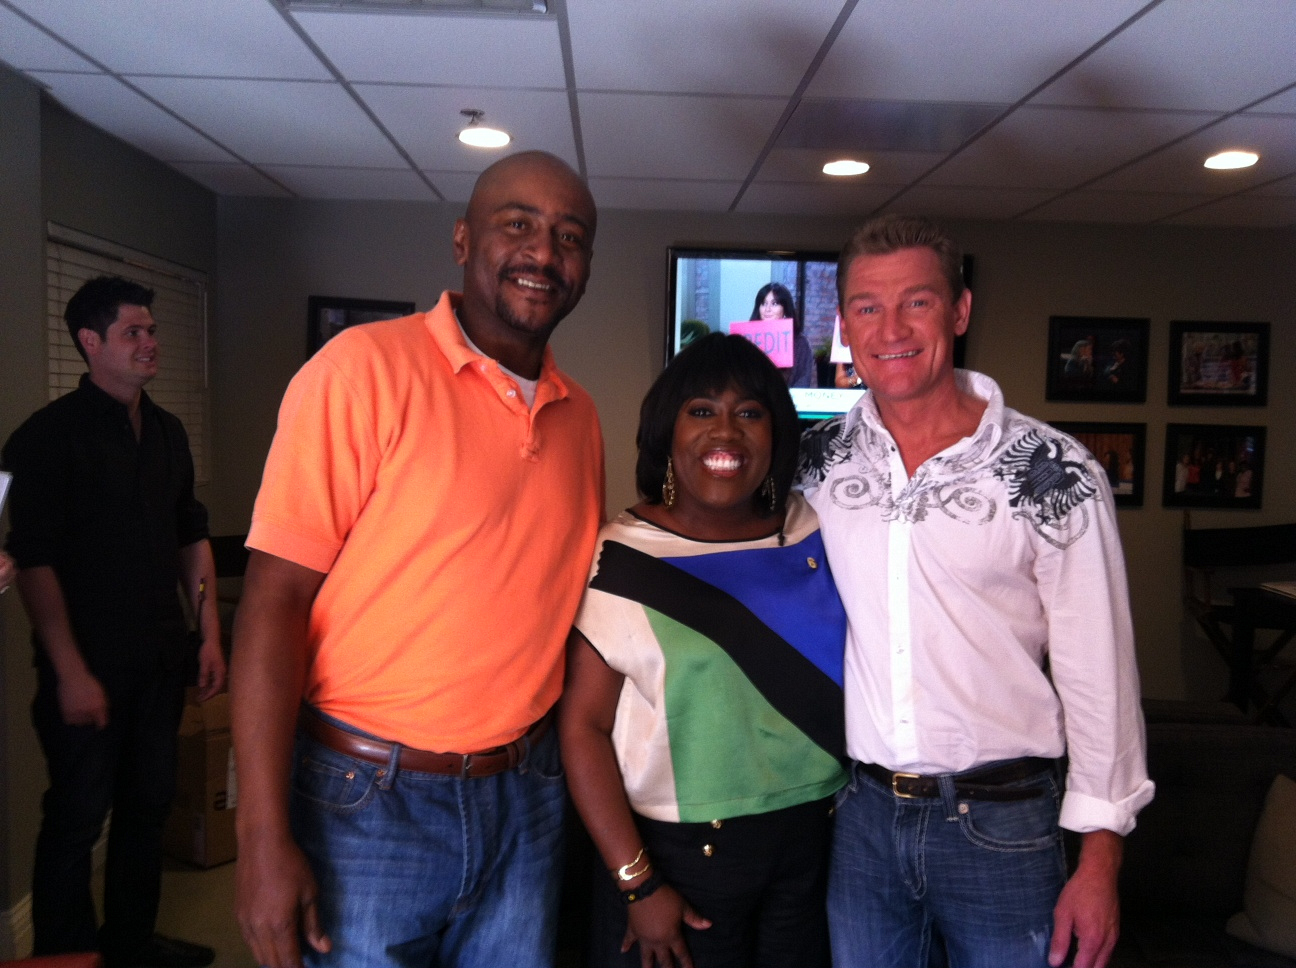 Mark and Bopper with Sheryl Underwood